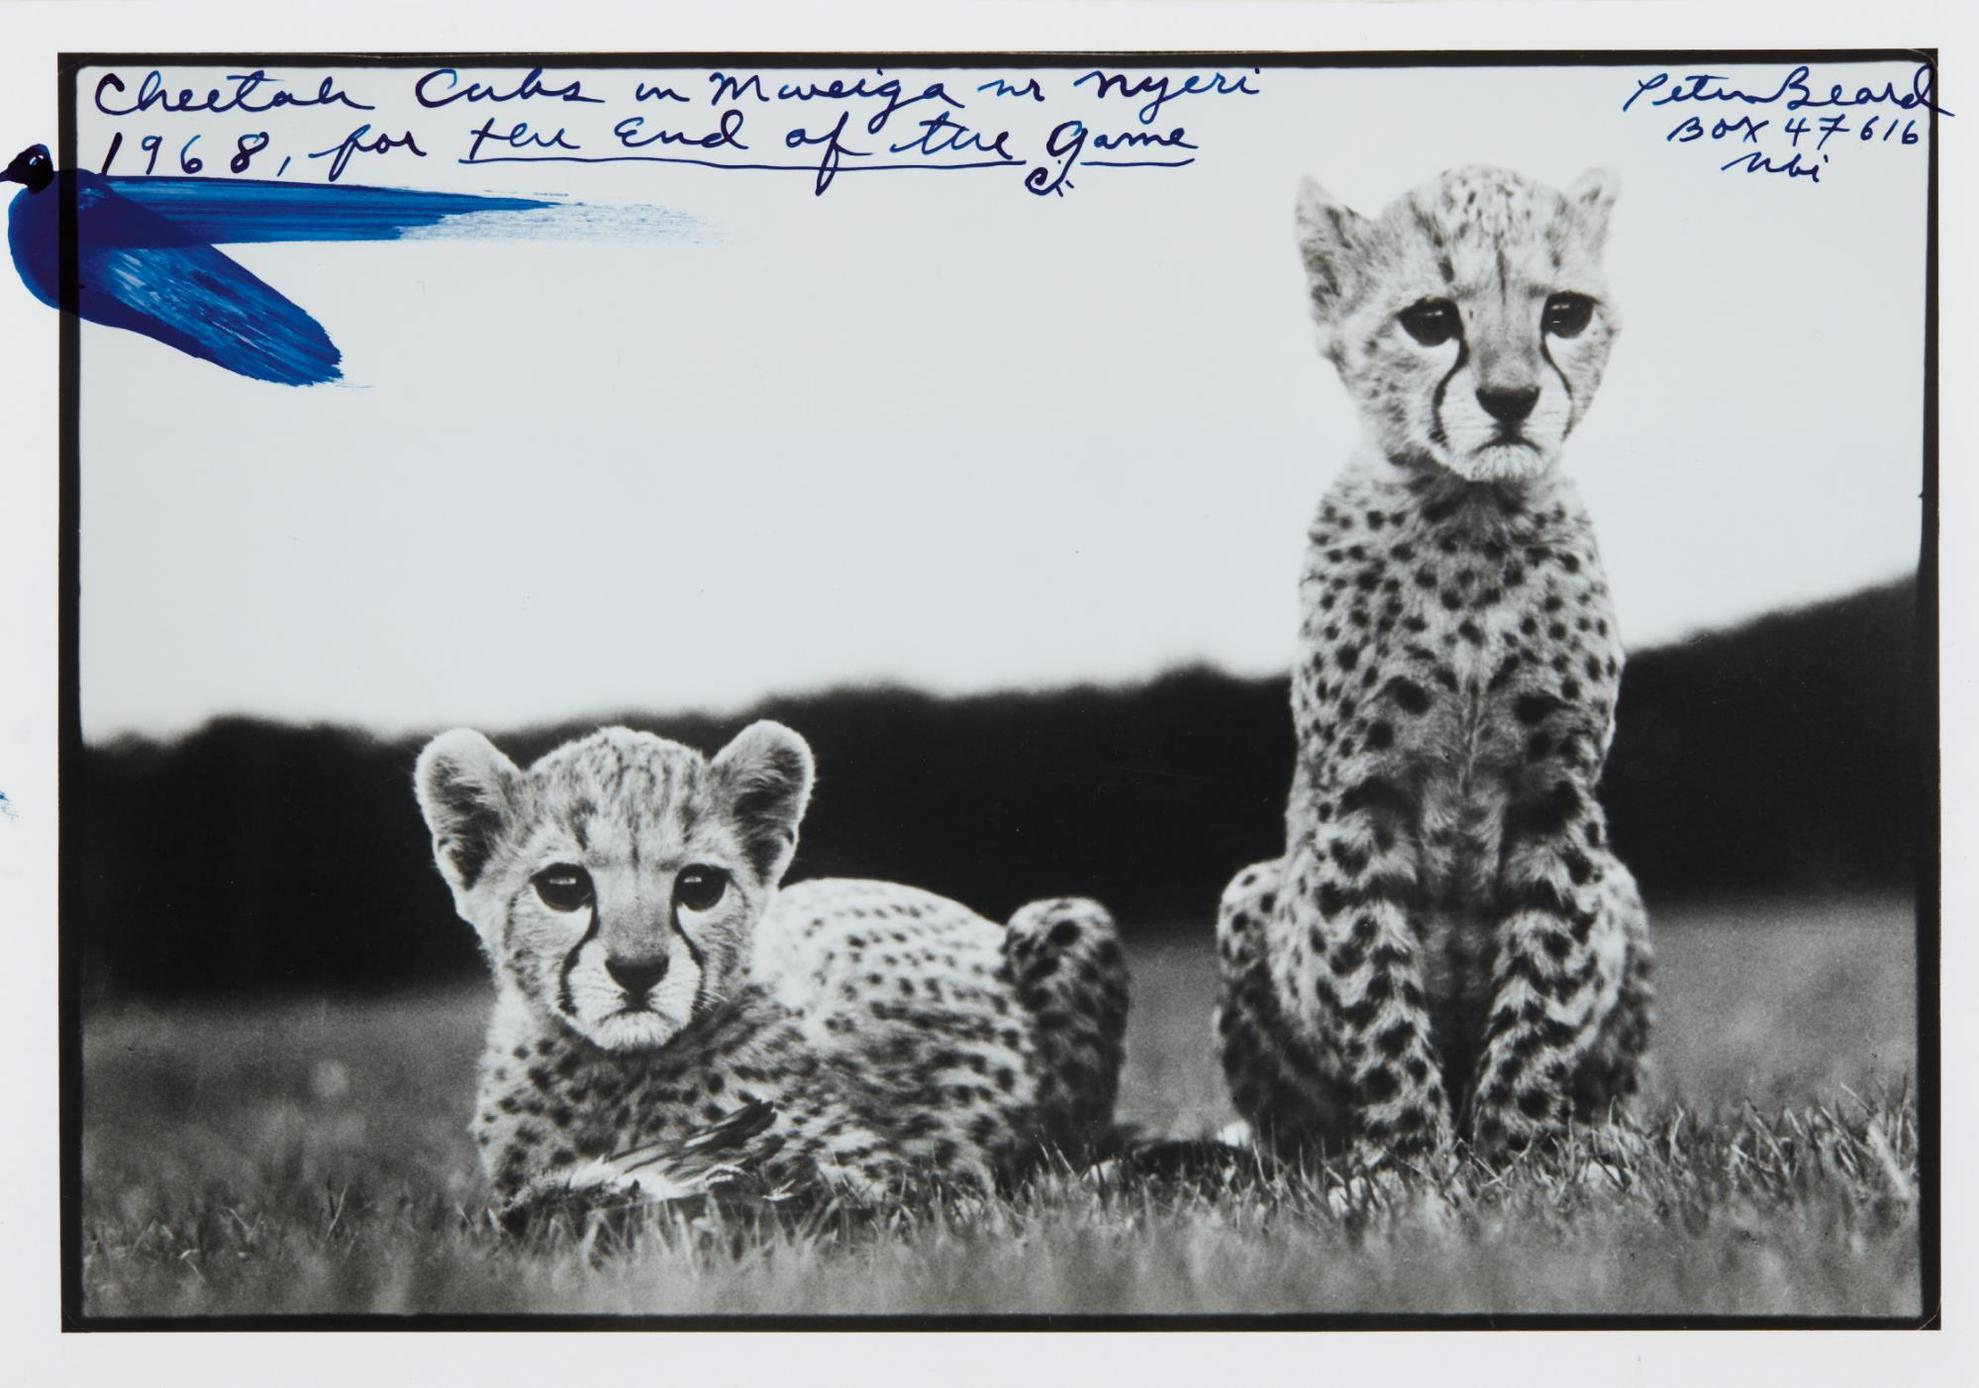 Peter Beard-Cheetah Cubs In Mweiga In Nyeri For The End Of The Game-1968